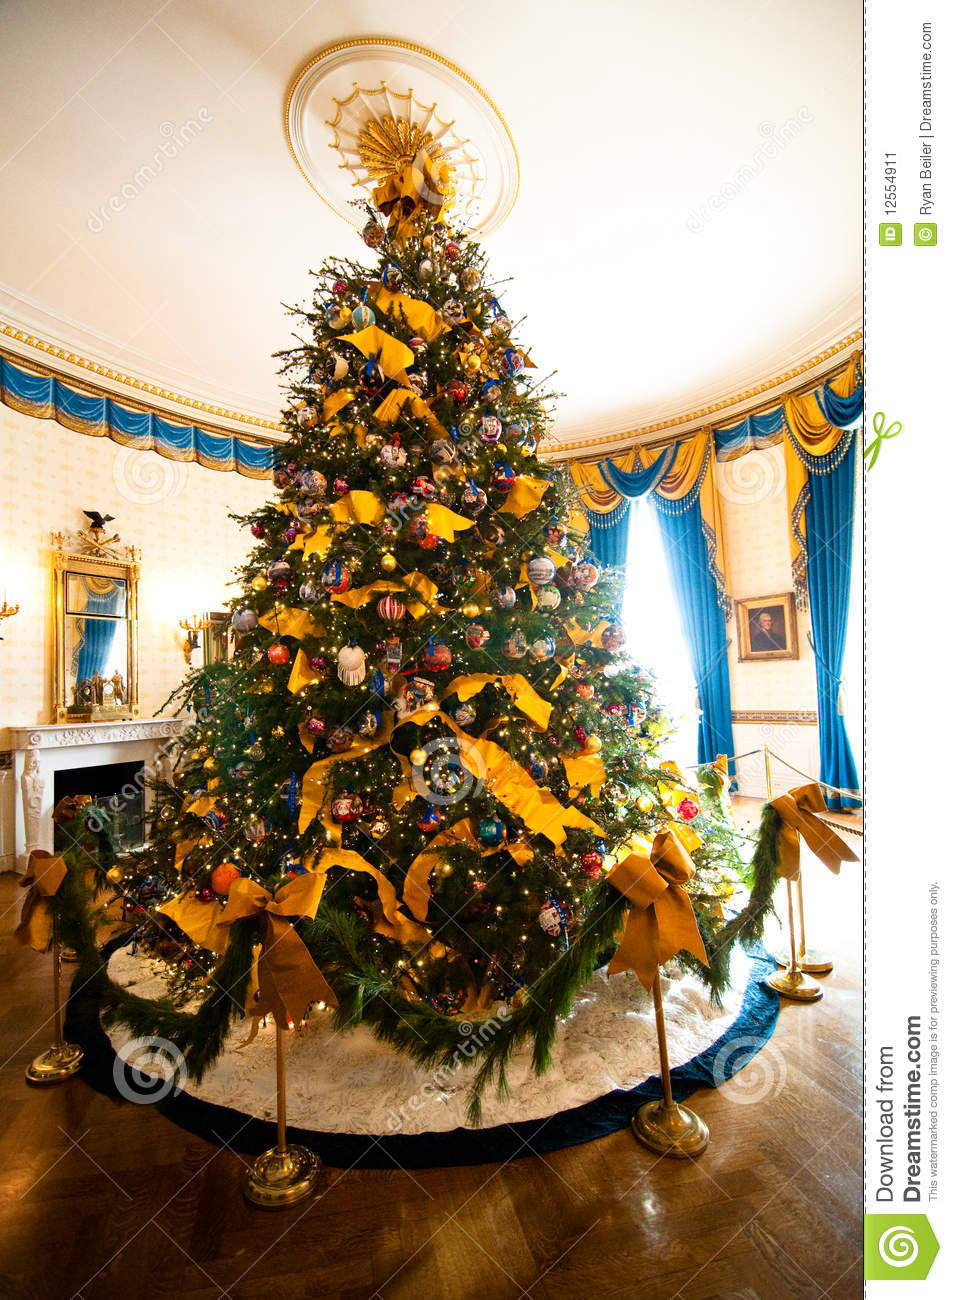 White house christmas tree stock image image of gold House beautiful christmas trees